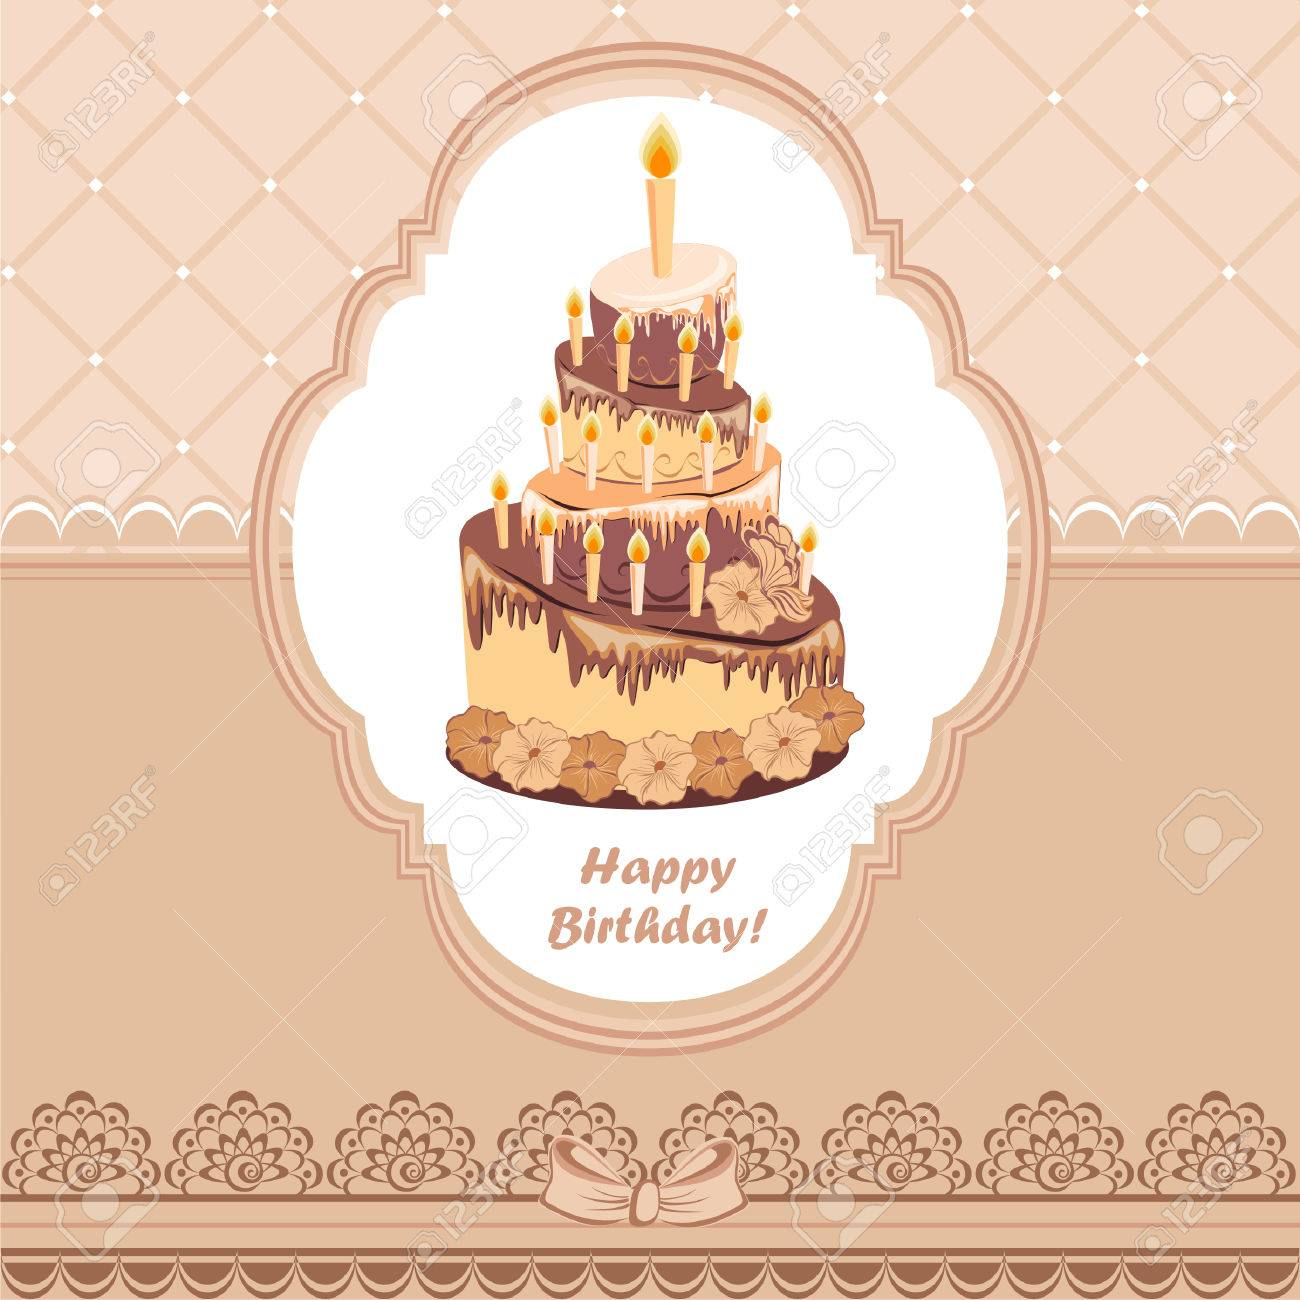 Beautiful Vintage Card On Birthday With Chocolate Cake Royalty Free